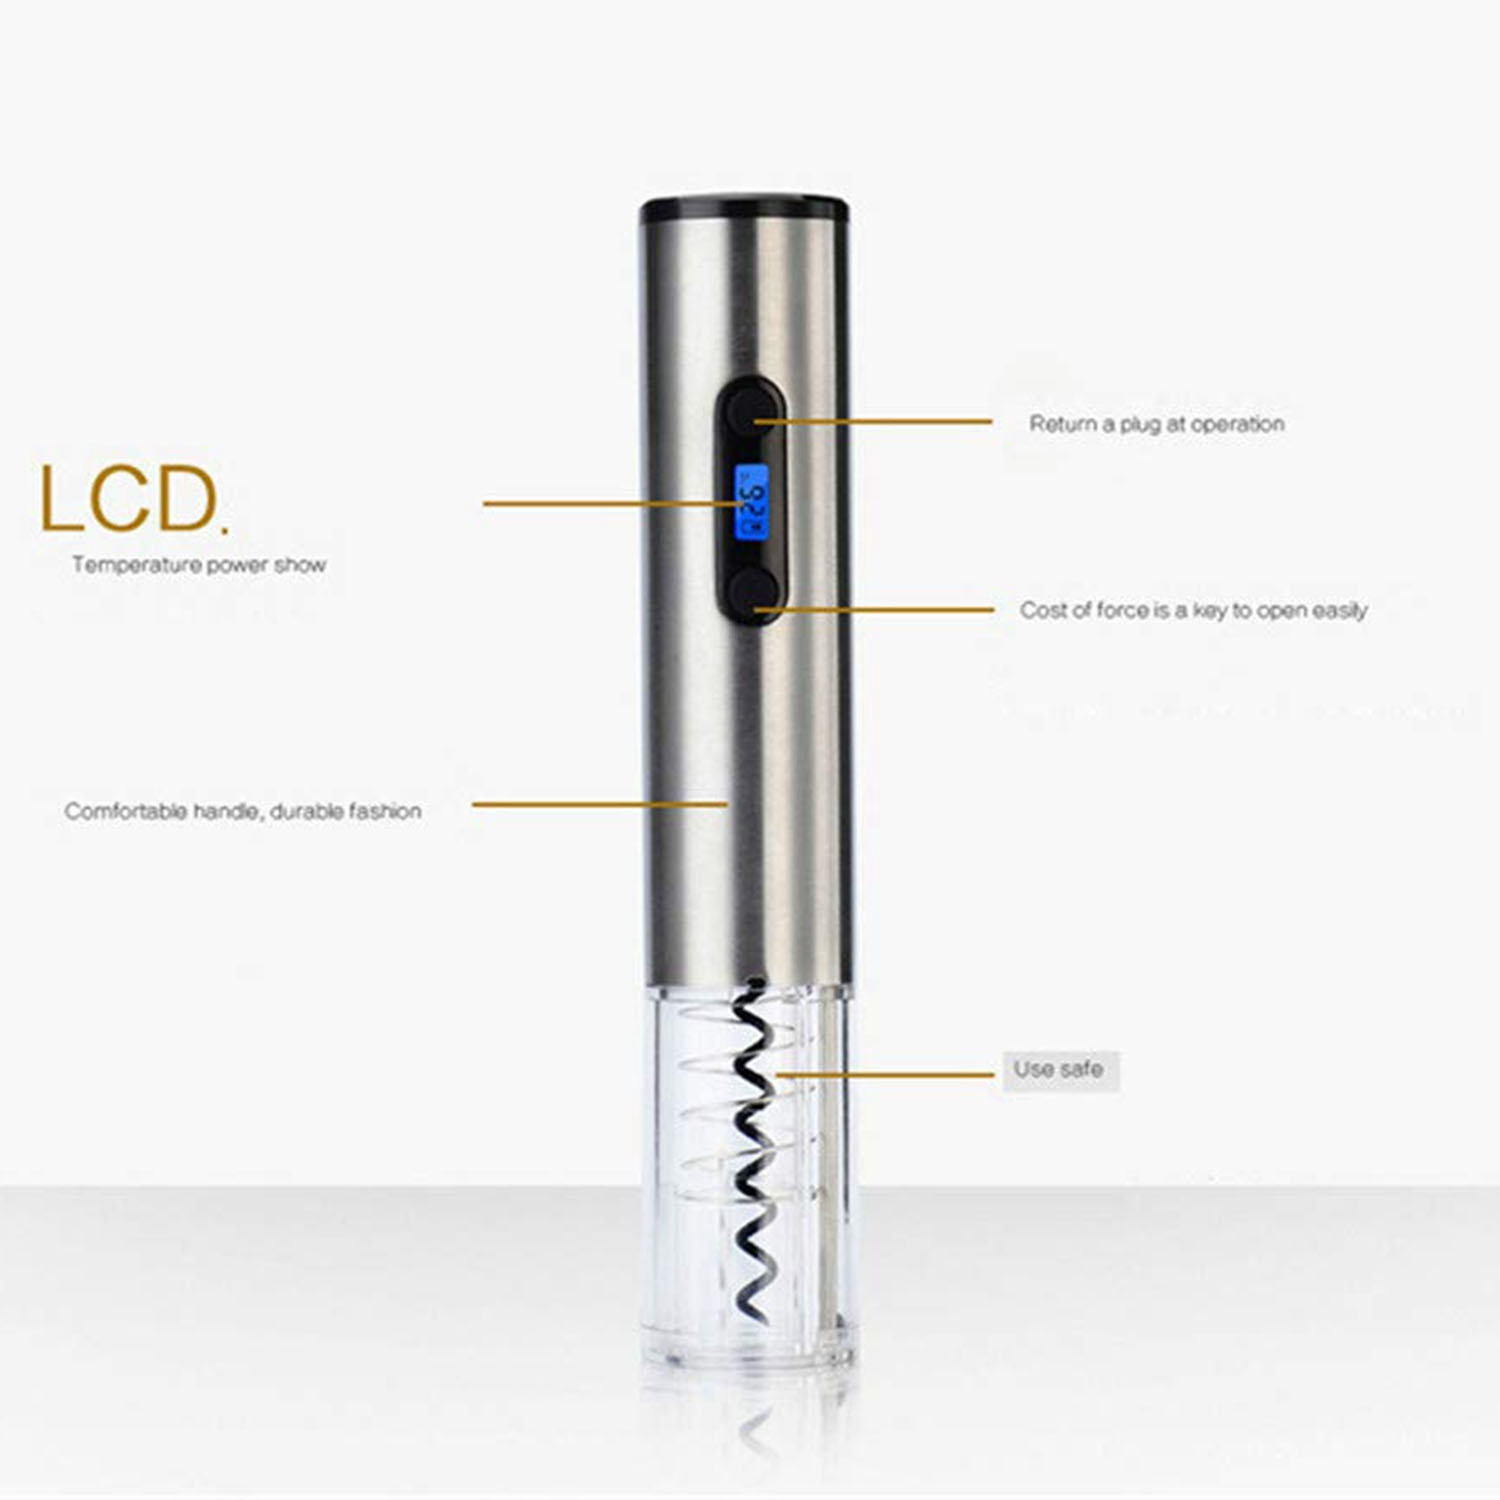 Electric Corkscrew Electric Stainless Steel Wine Bottle Opener With Charging Stand Lcd Battery Indicator, Silver (Eu Plug)